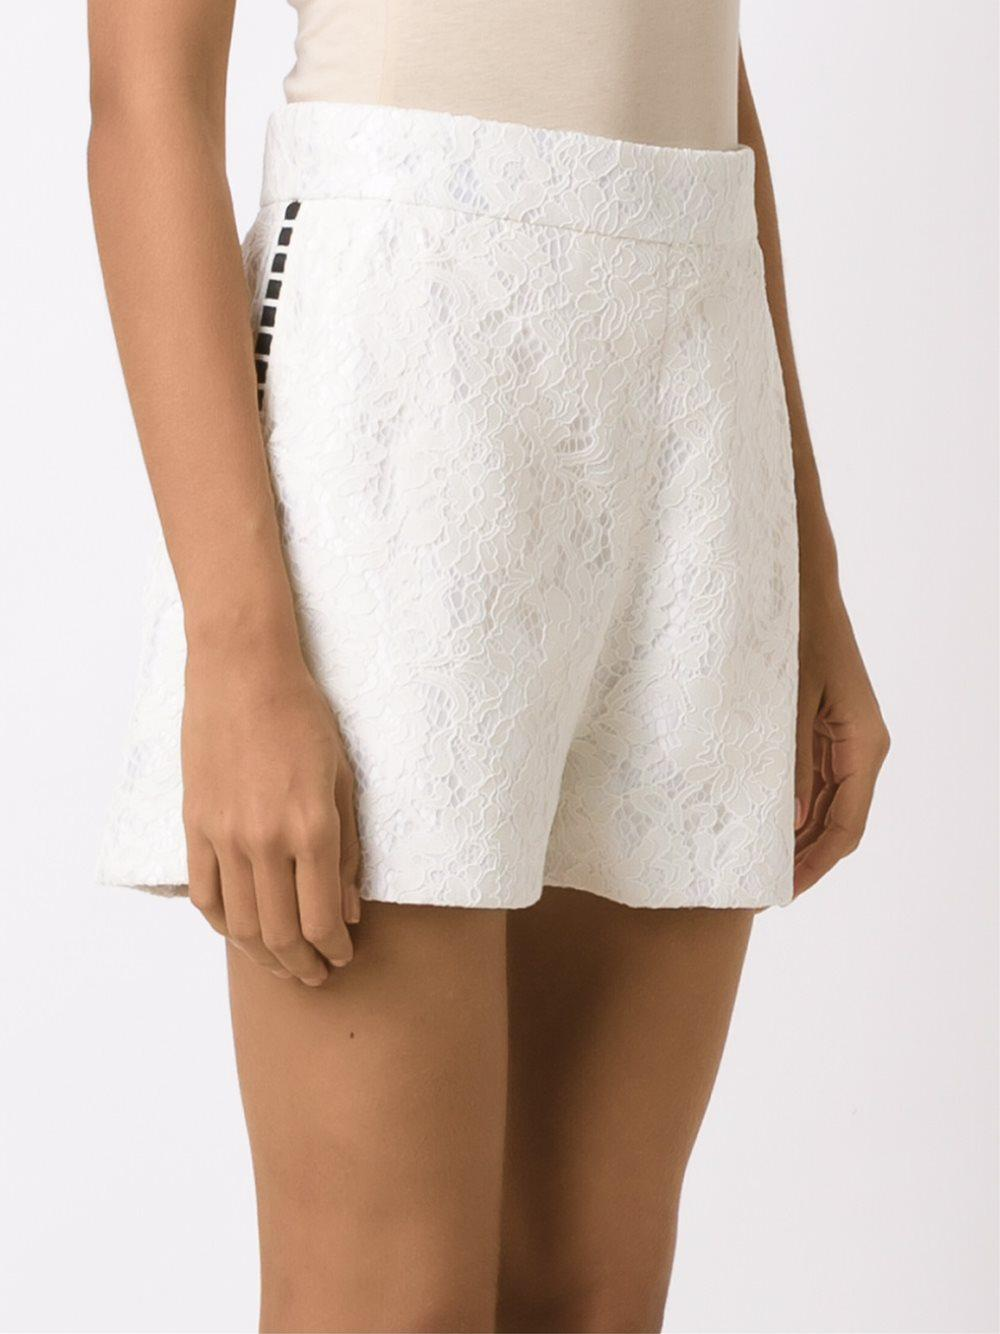 Discount Enjoy lace shorts - White Martha Medeiros Clearance New Buy Cheap Free Shipping 2018 Sale Online Recommend Cheap Price dG4mWB